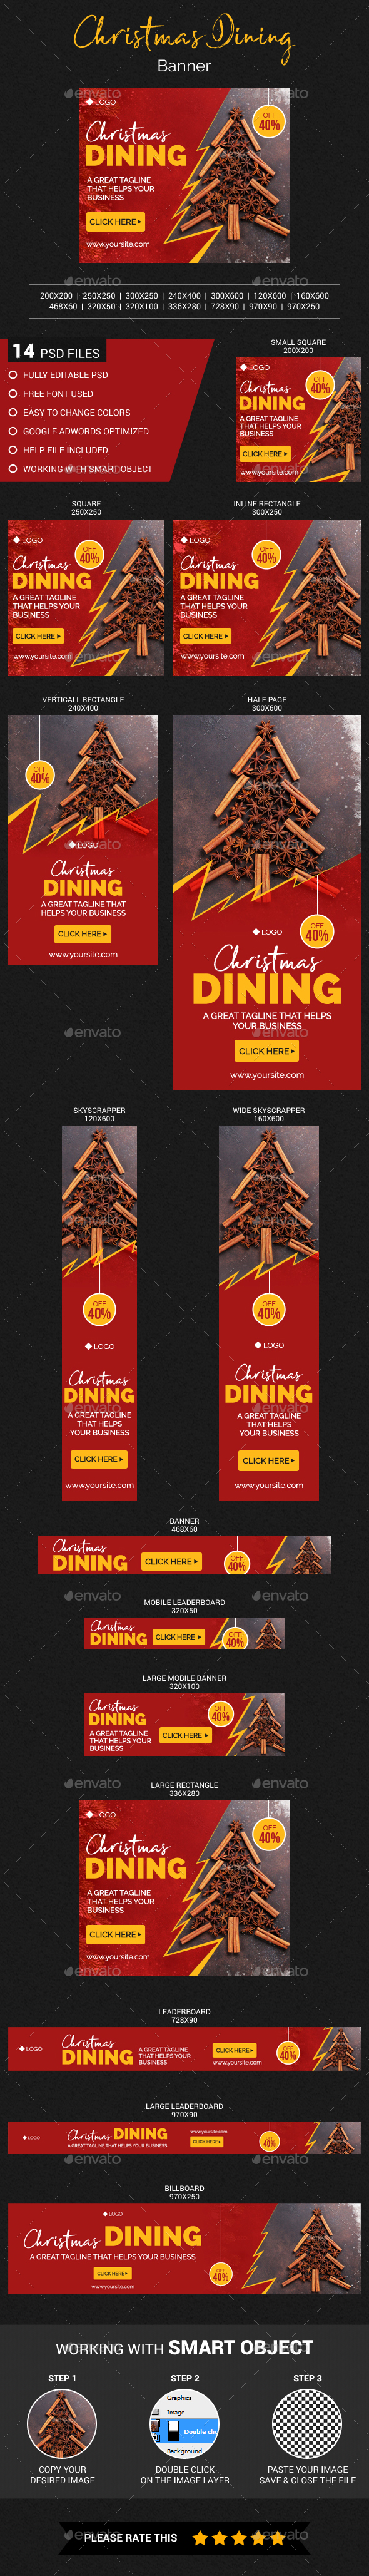 GraphicRiver Christmas Dining Banner 21084897